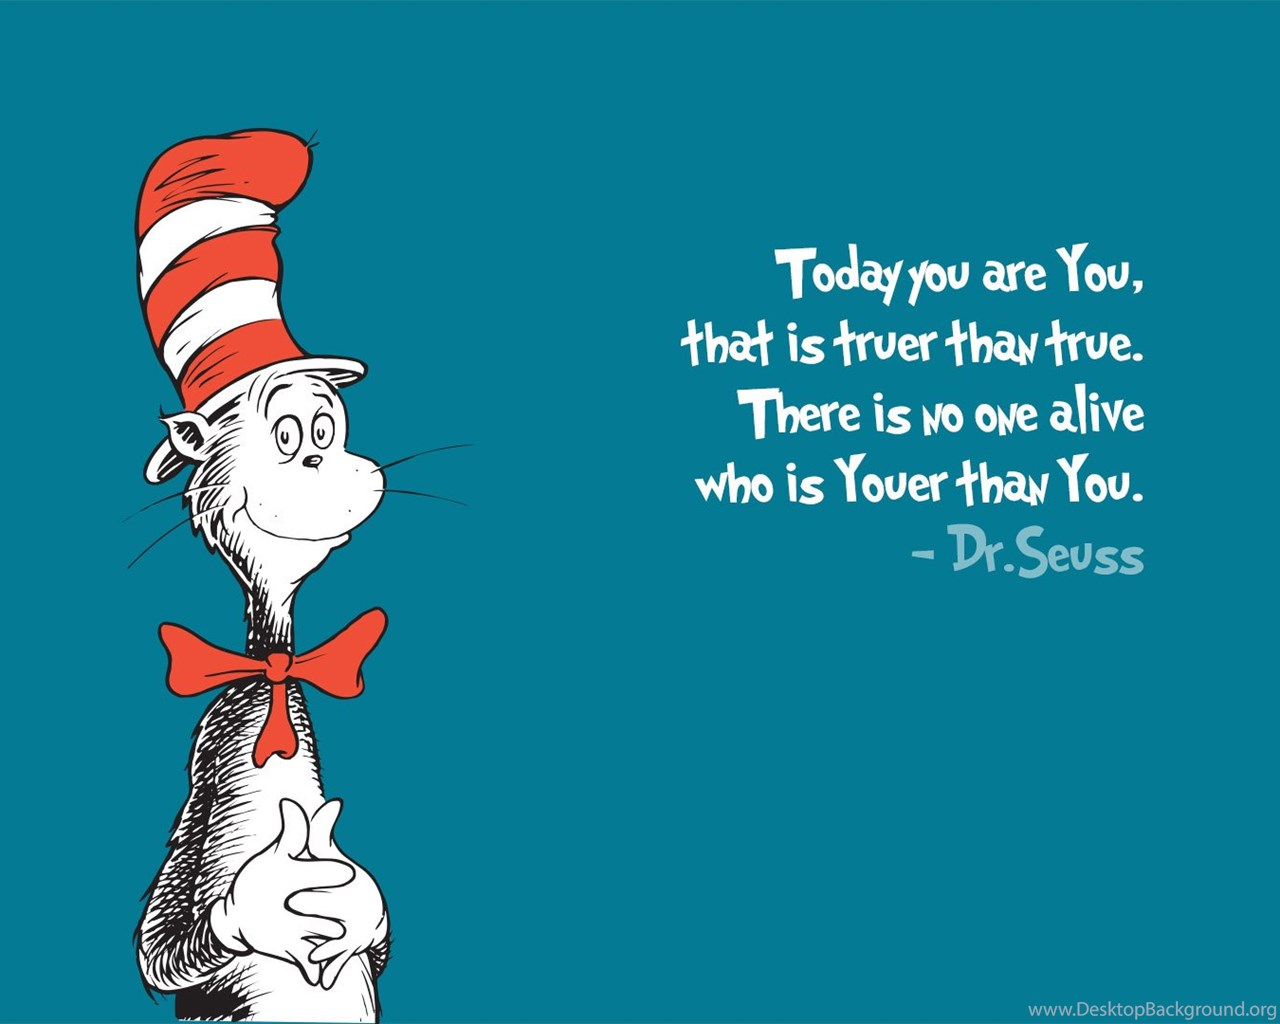 Motivational Quotes Computer Backgrounds Wallpapers High Resolution Cartoon Dr Seuss Quotes Wallpapers Hd 1